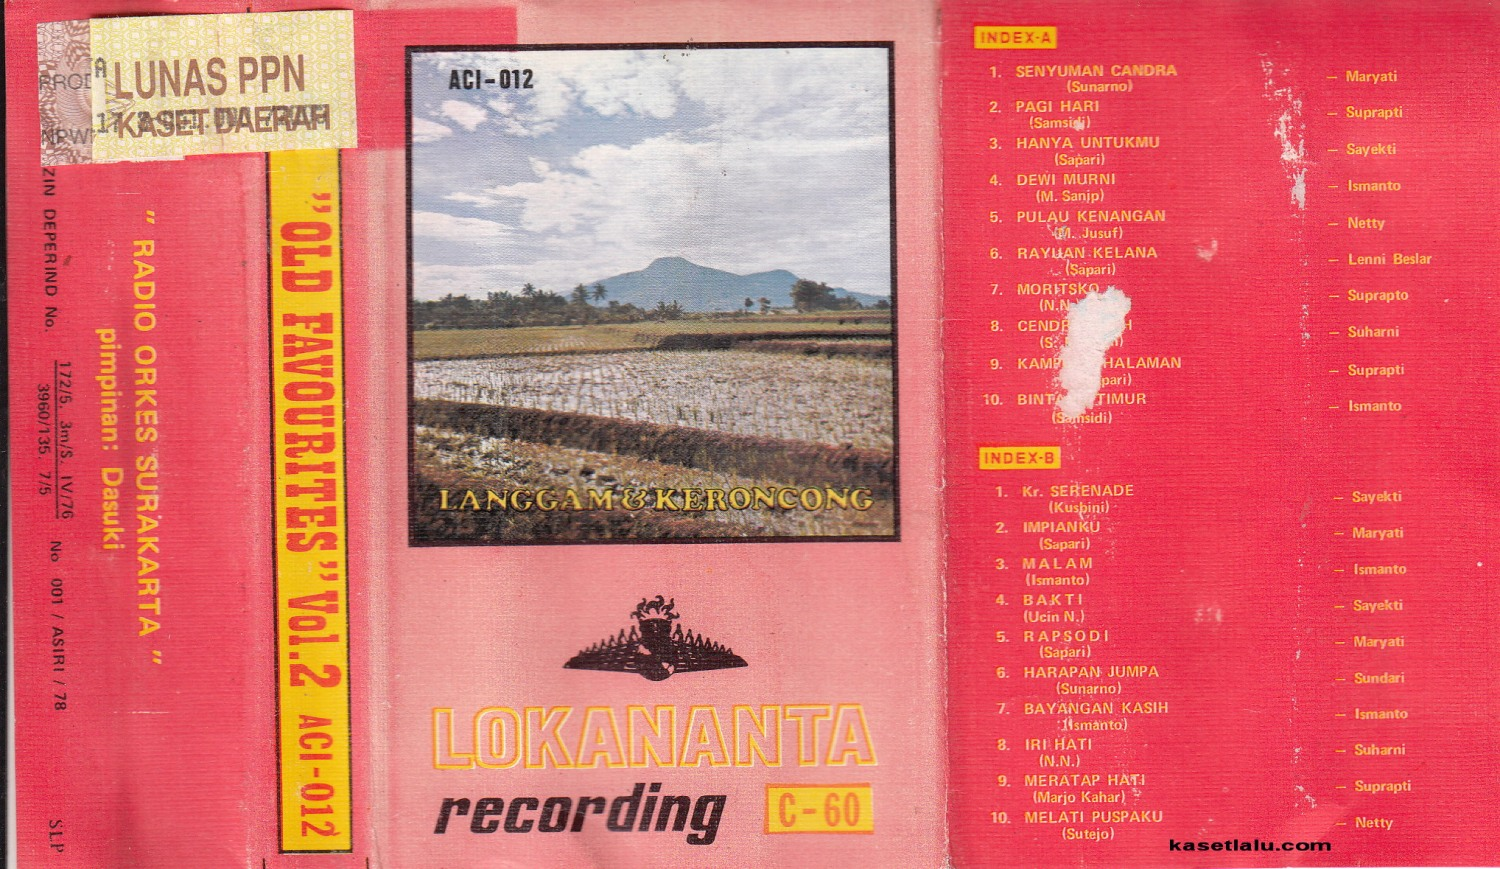 Lokananta Recording - Old Favourites Vol.2